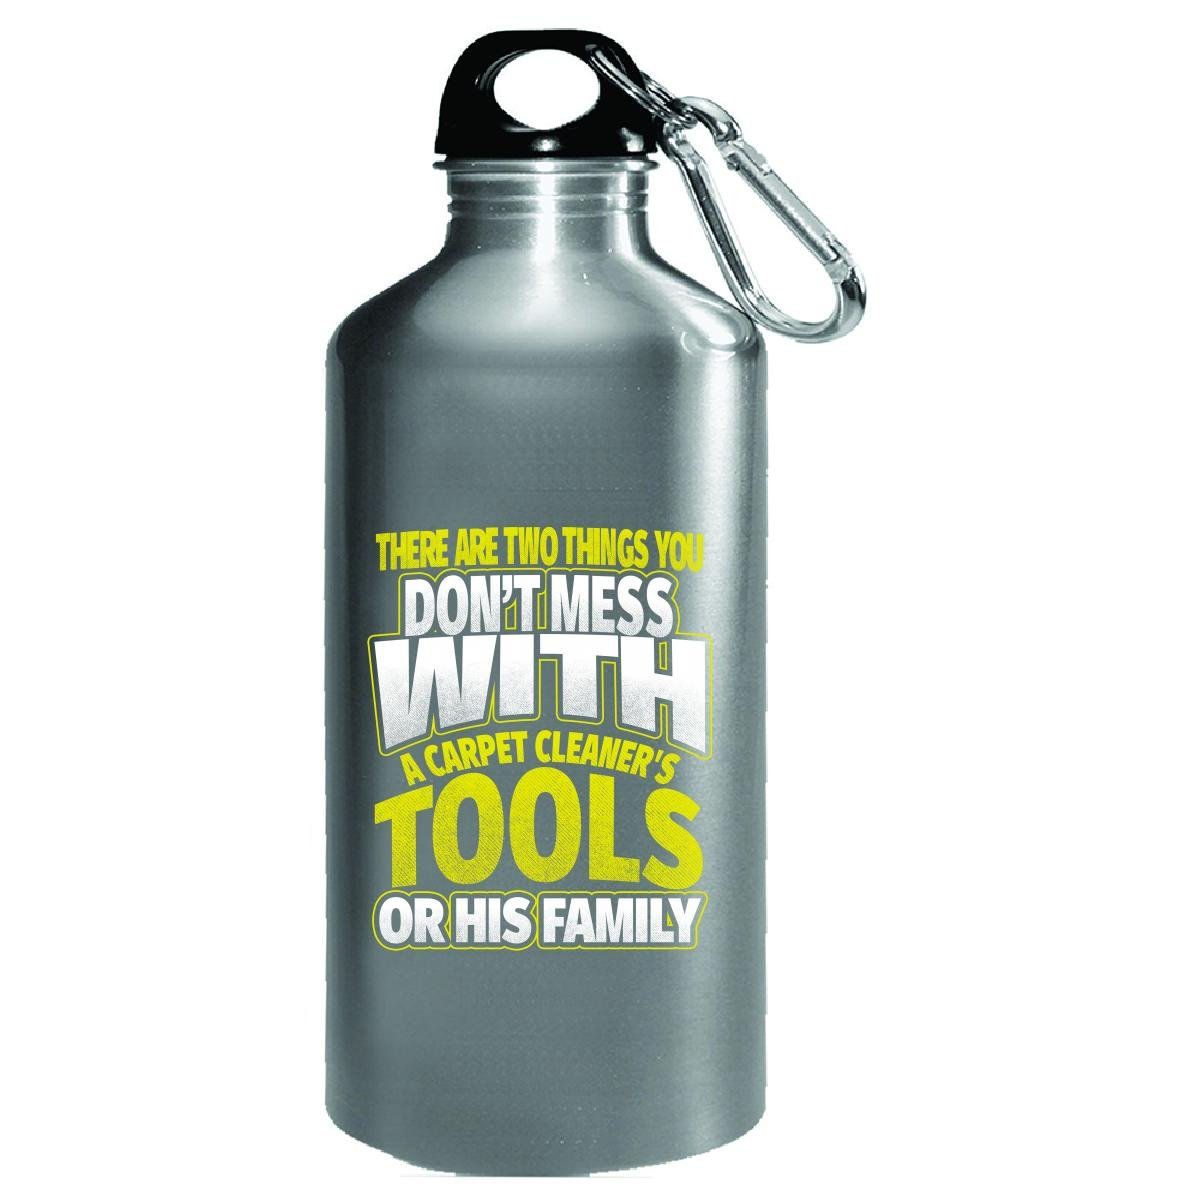 Don't Mess With Tools Or Family Carpet Cleaner - Water Bottle